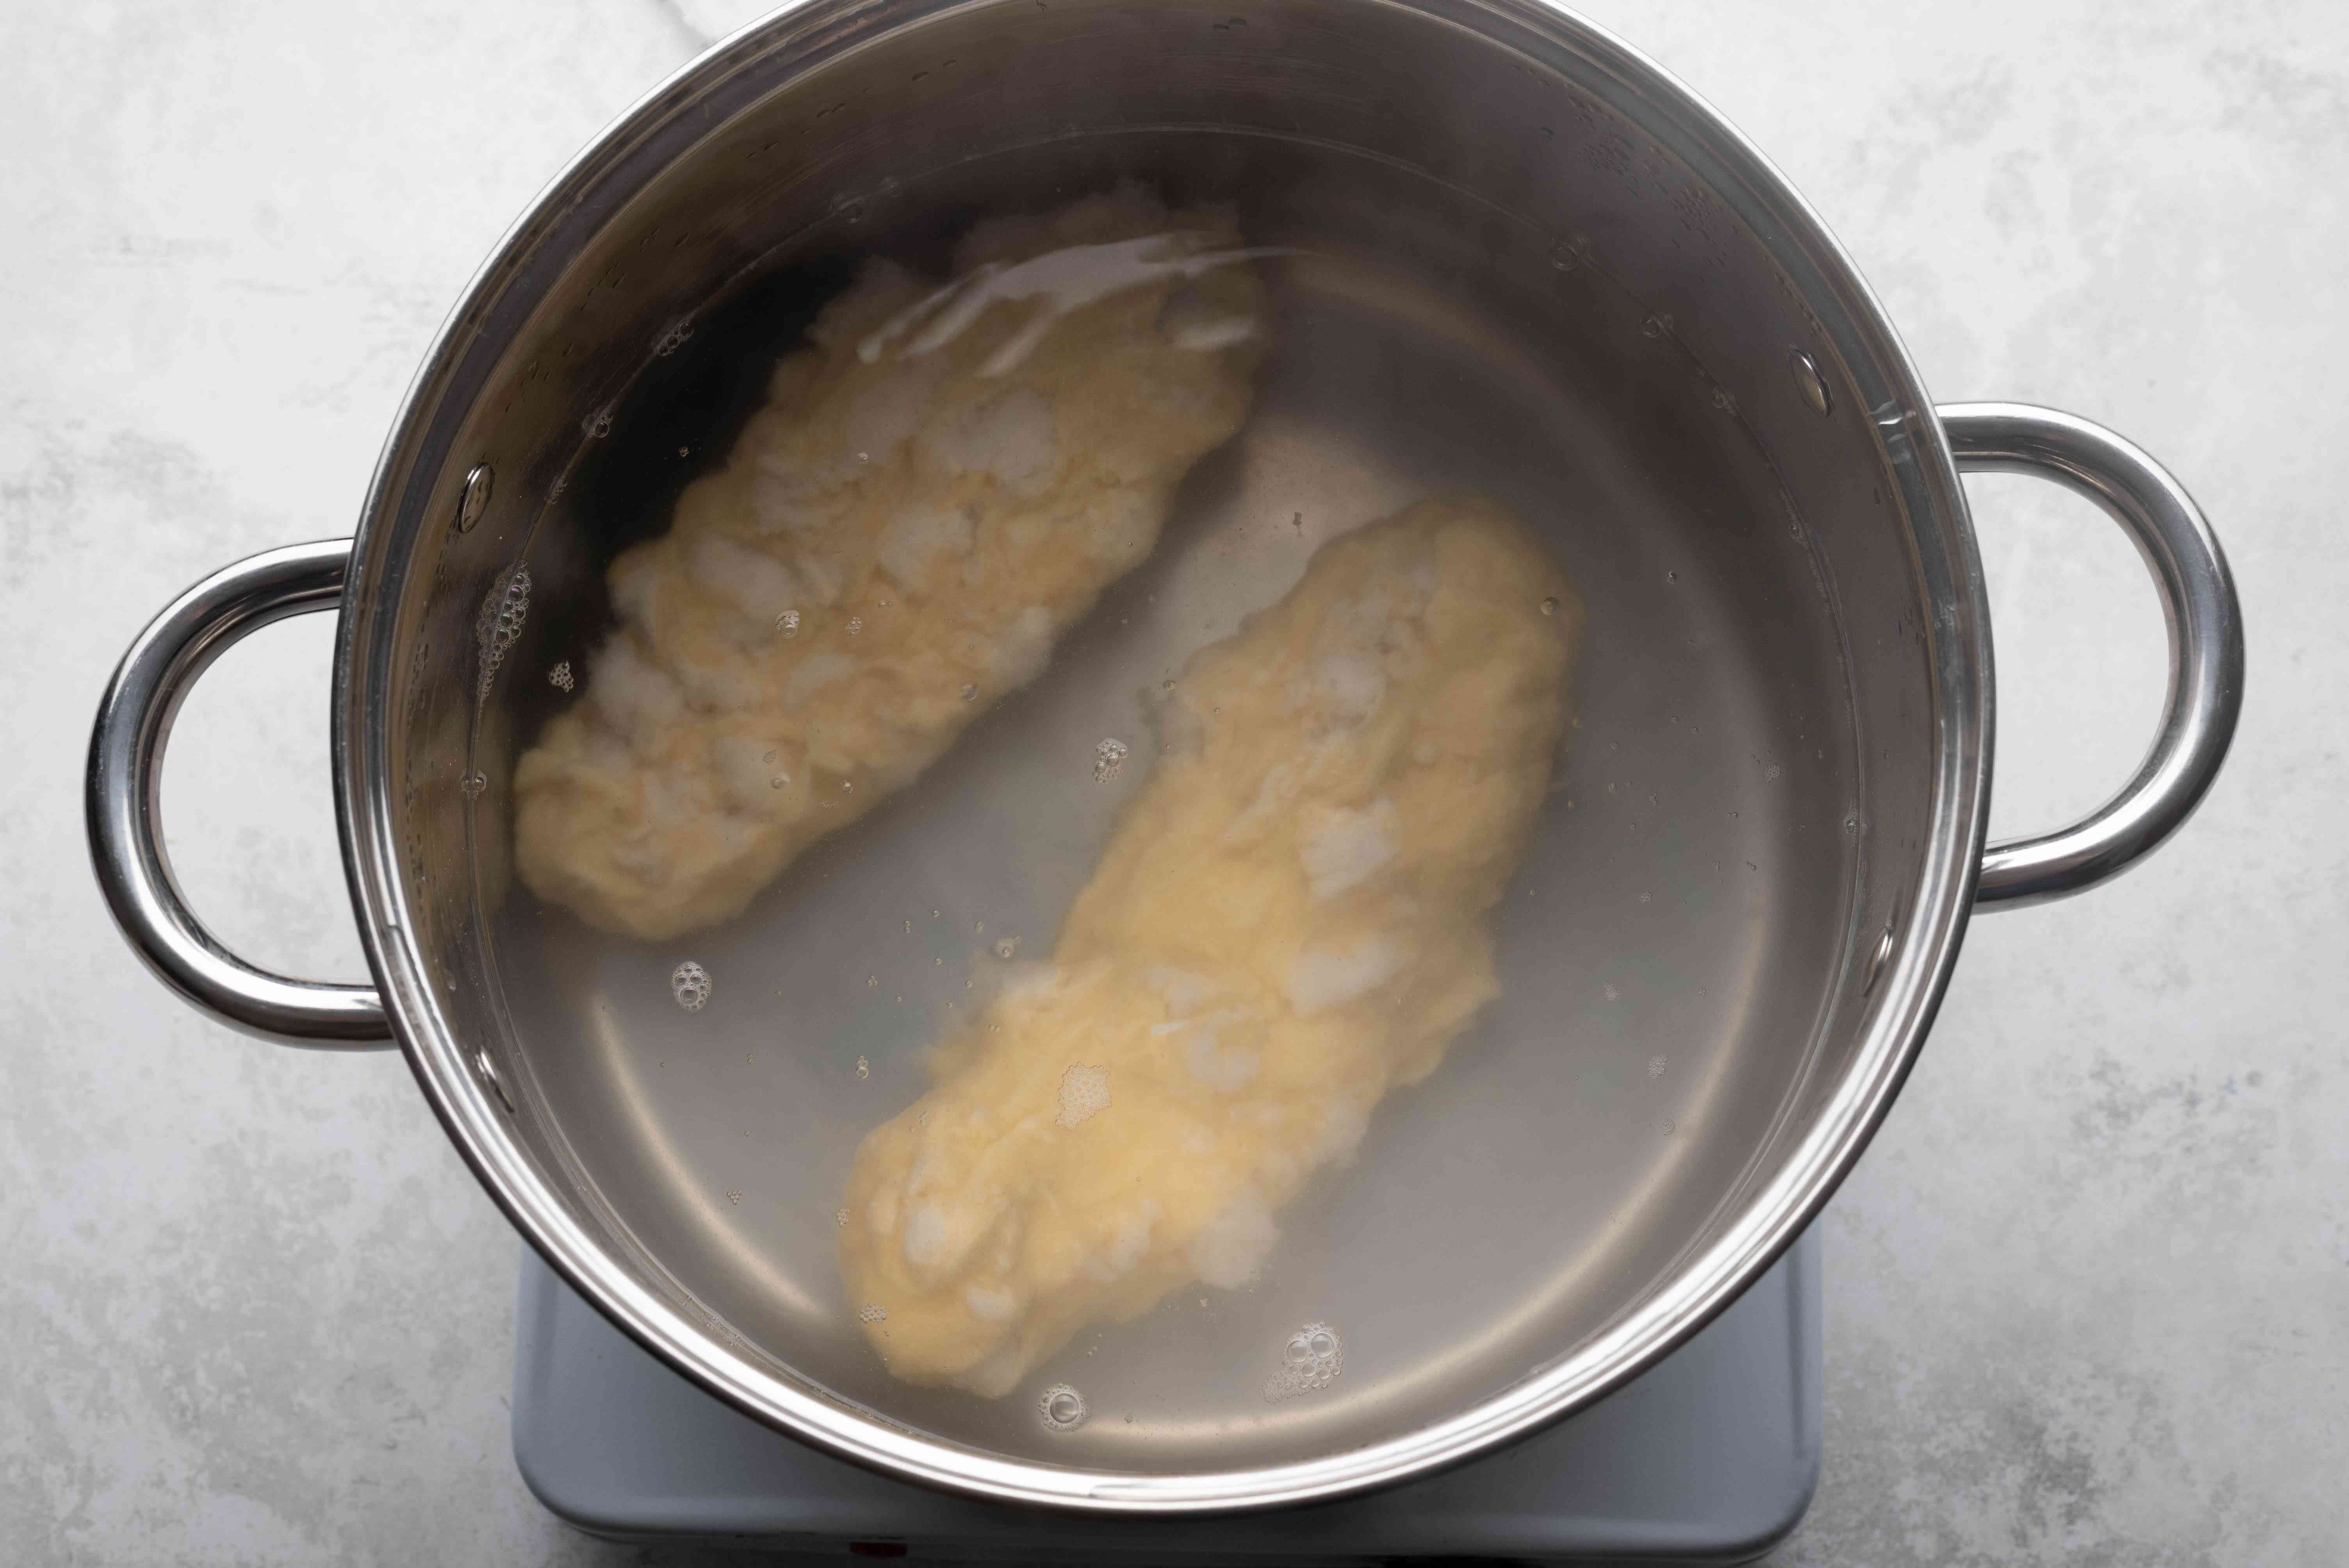 Rolls of dough in a pot with boiling water